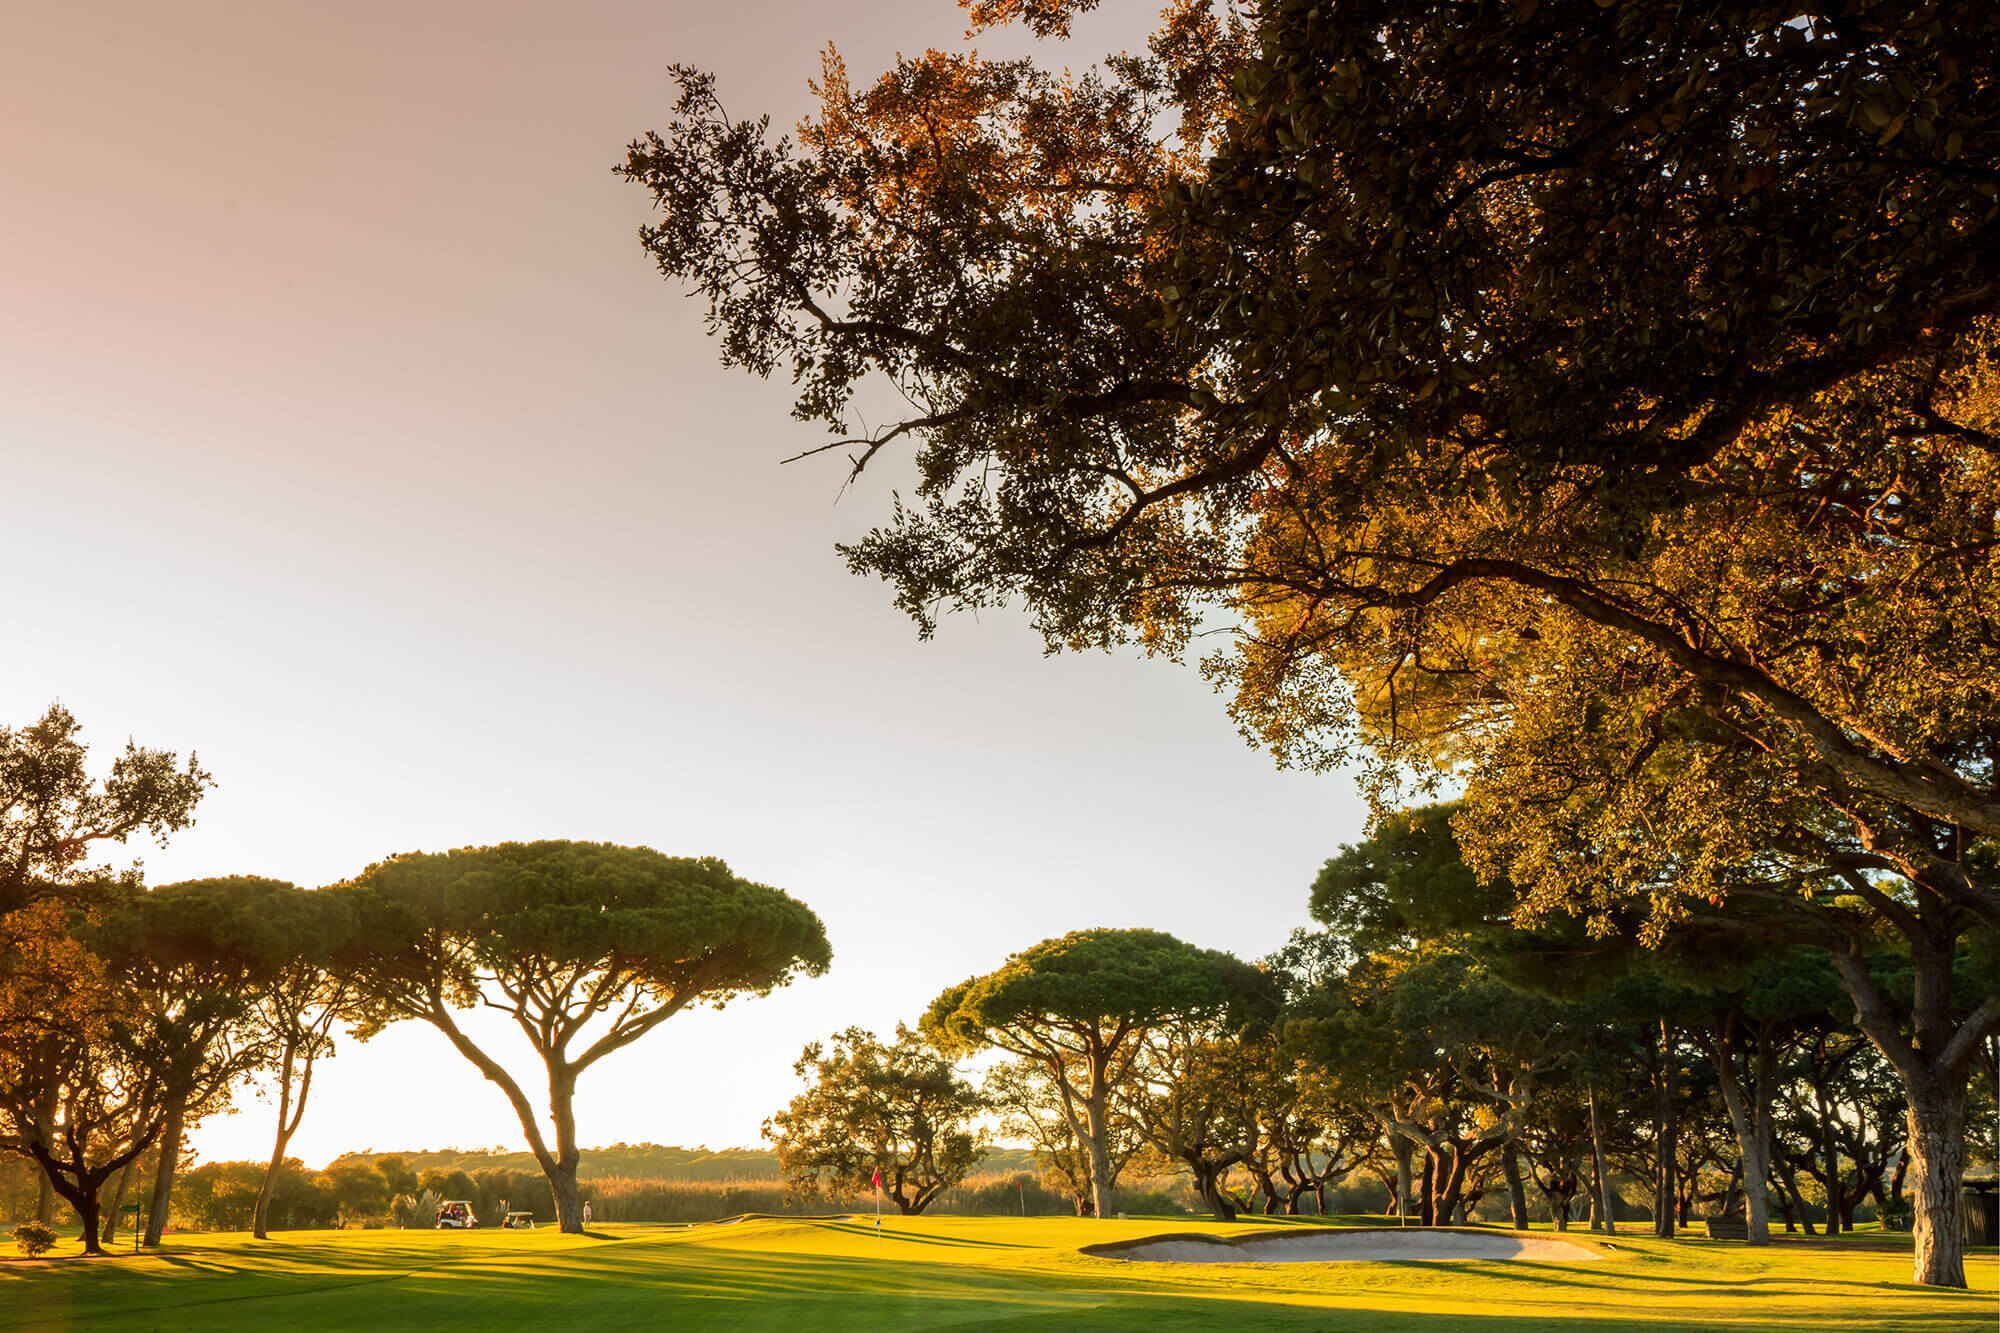 Which airports can I fly to for Golf Holidays in Portugal?